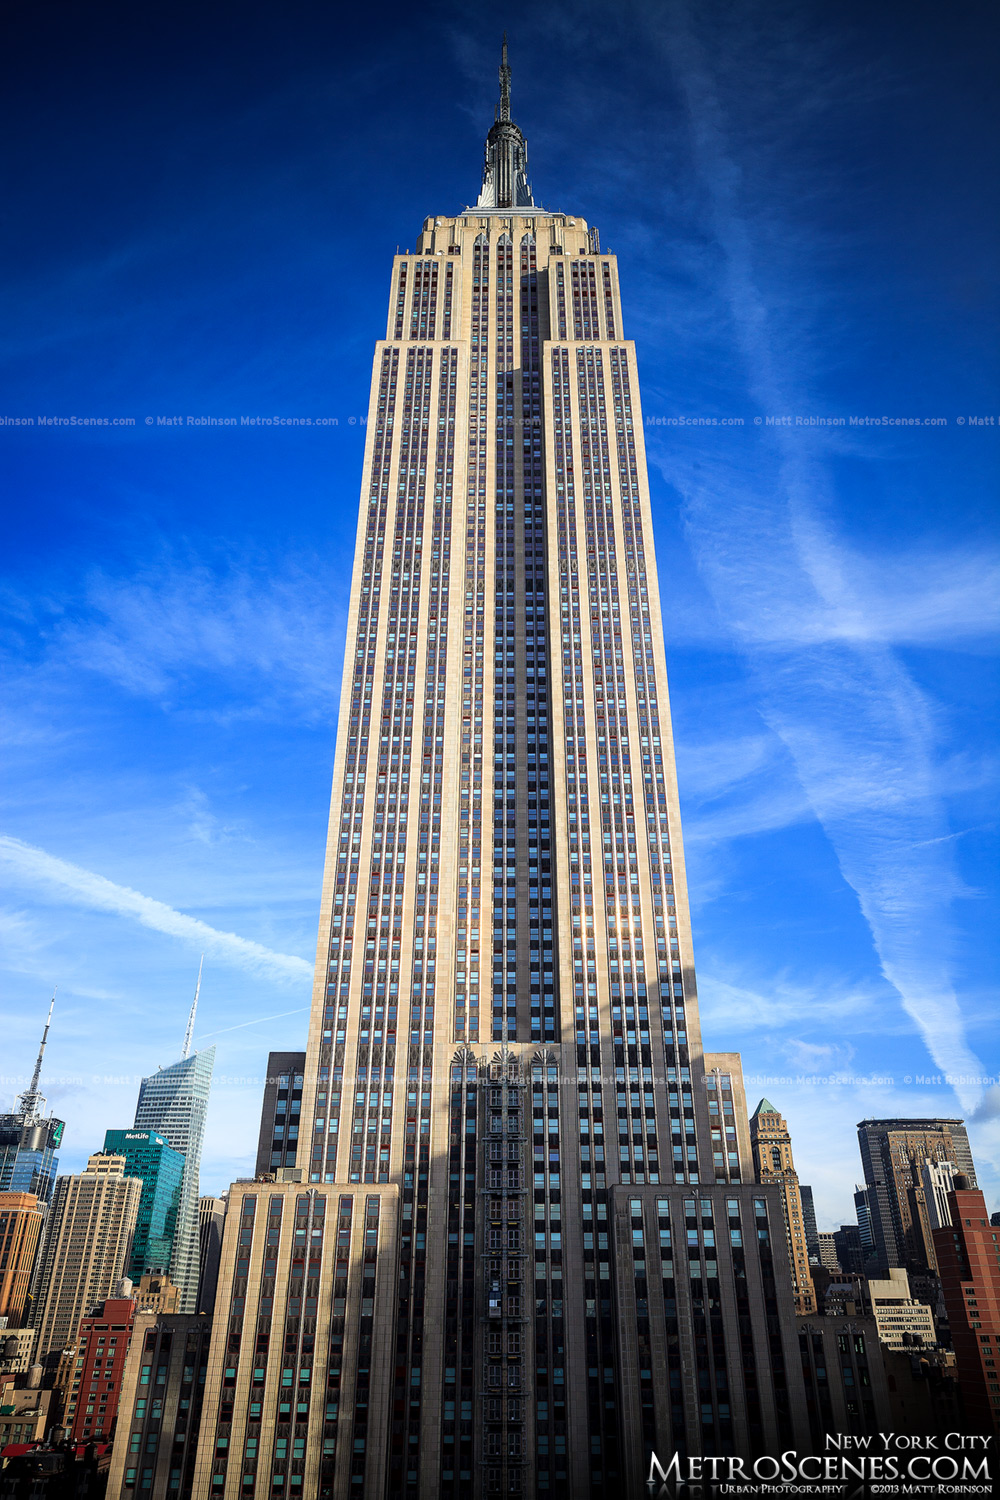 Blue sky and contrails with the Empire State Building